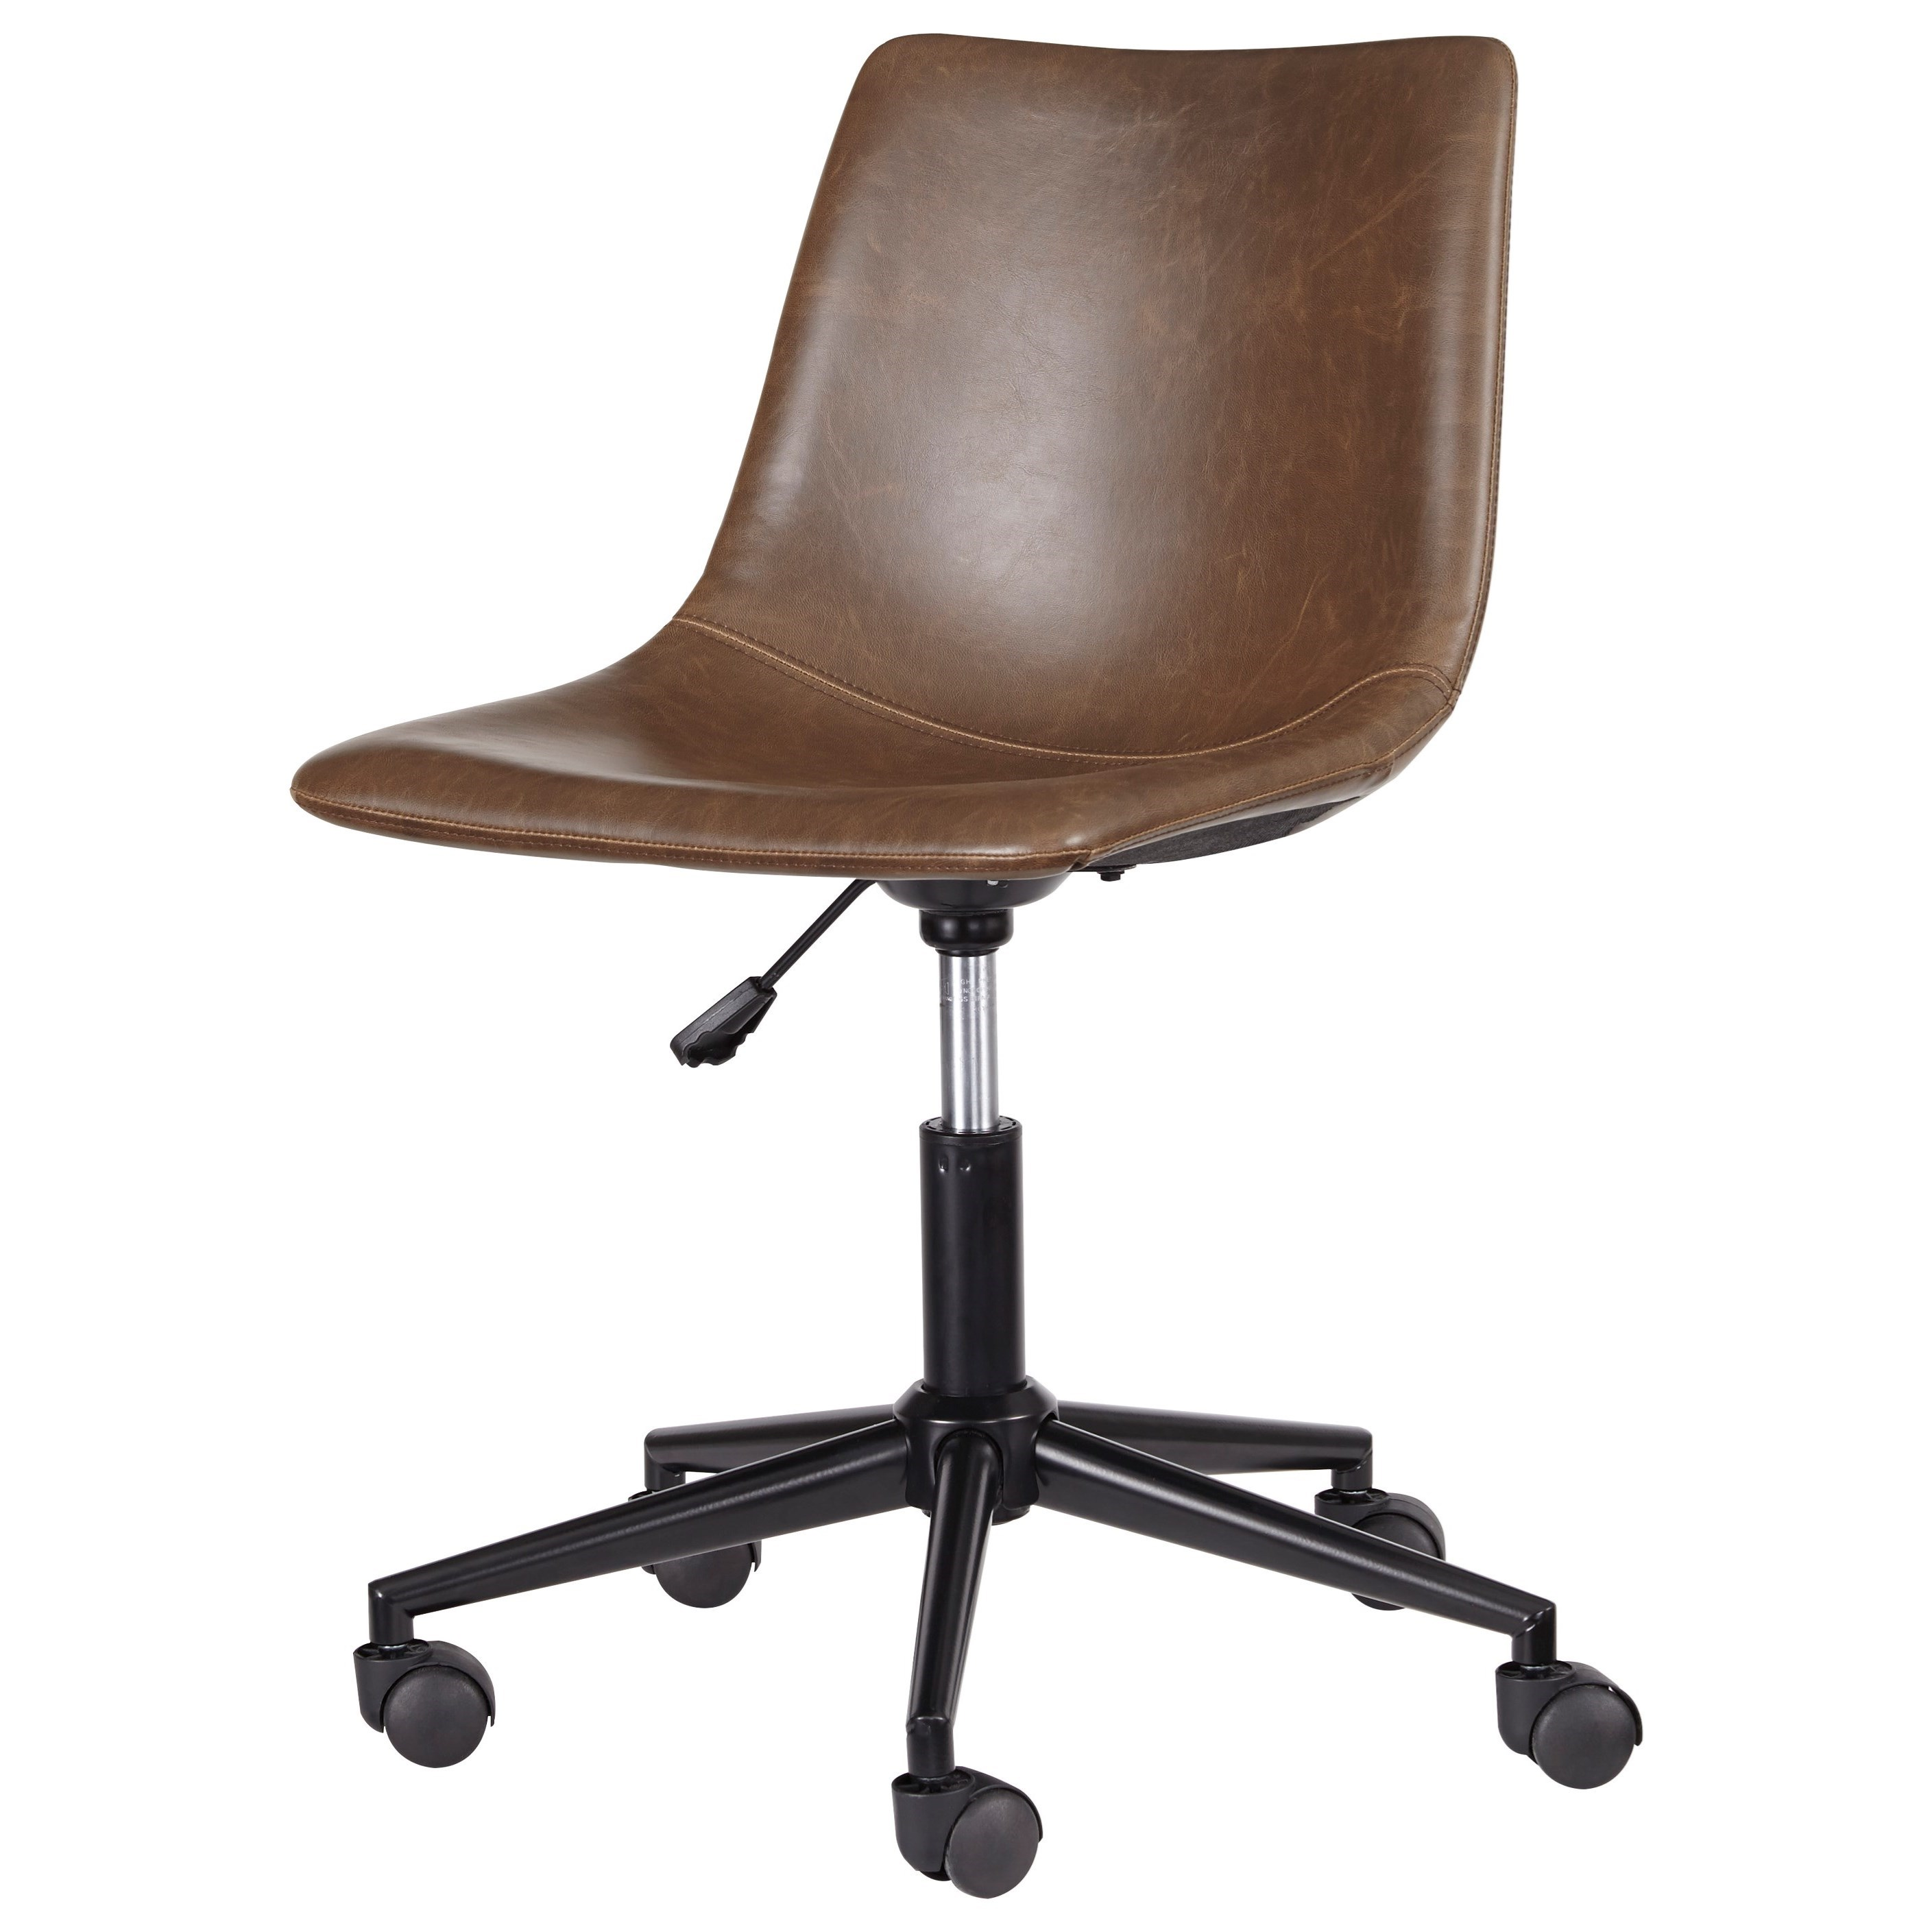 Office Chair Program Home Office Swivel Desk Chair by Ashley (Signature Design) at Johnny Janosik